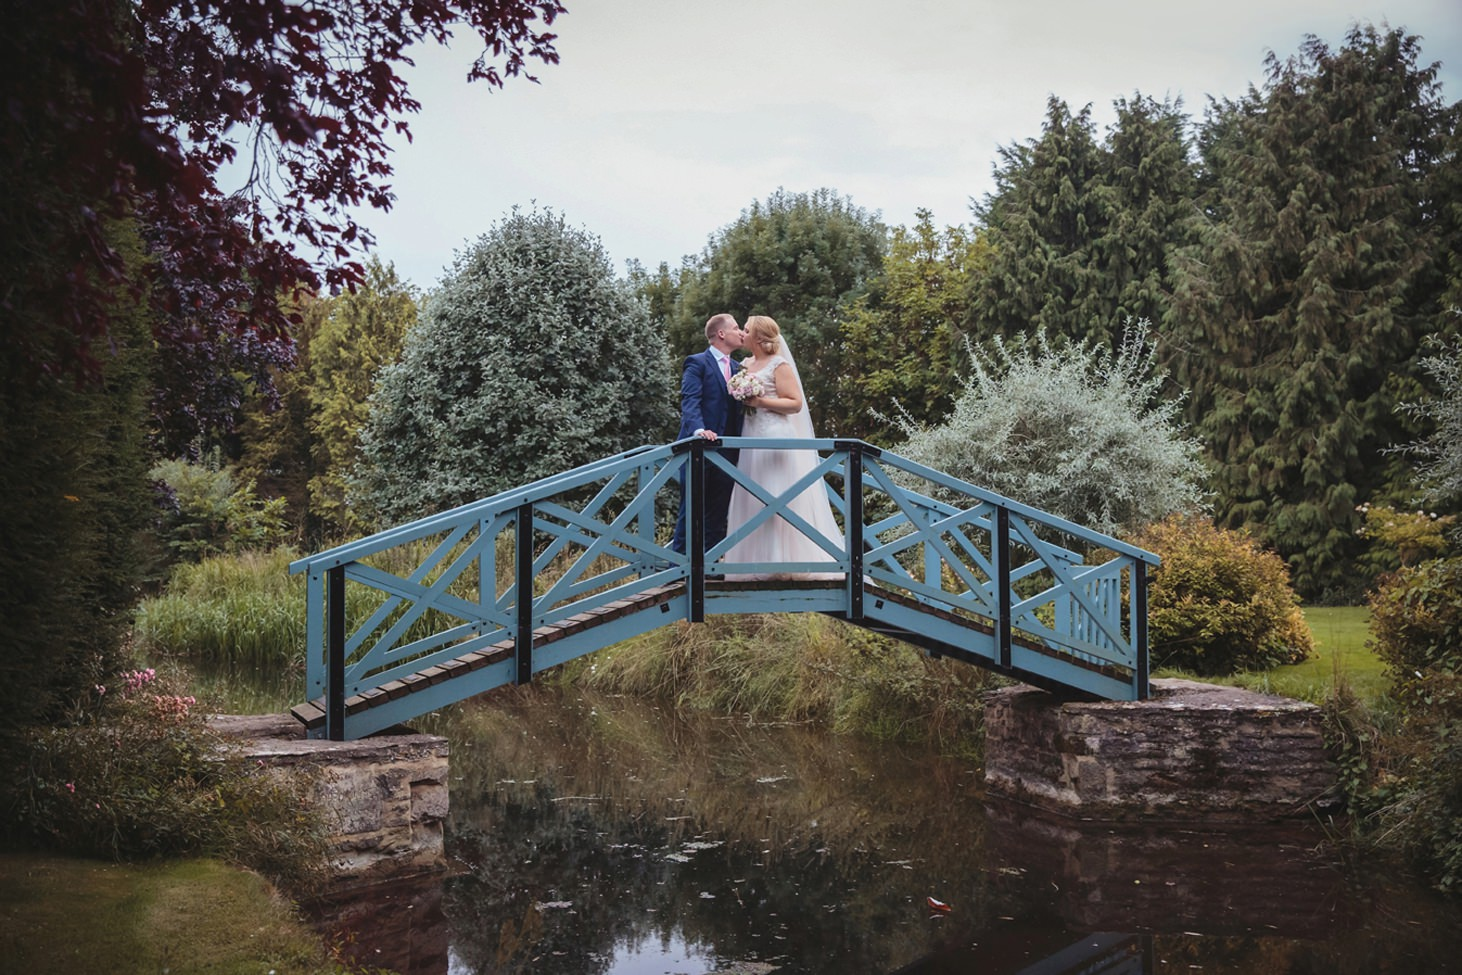 oxfordshire wedding photography bride and groom on bridge kissing